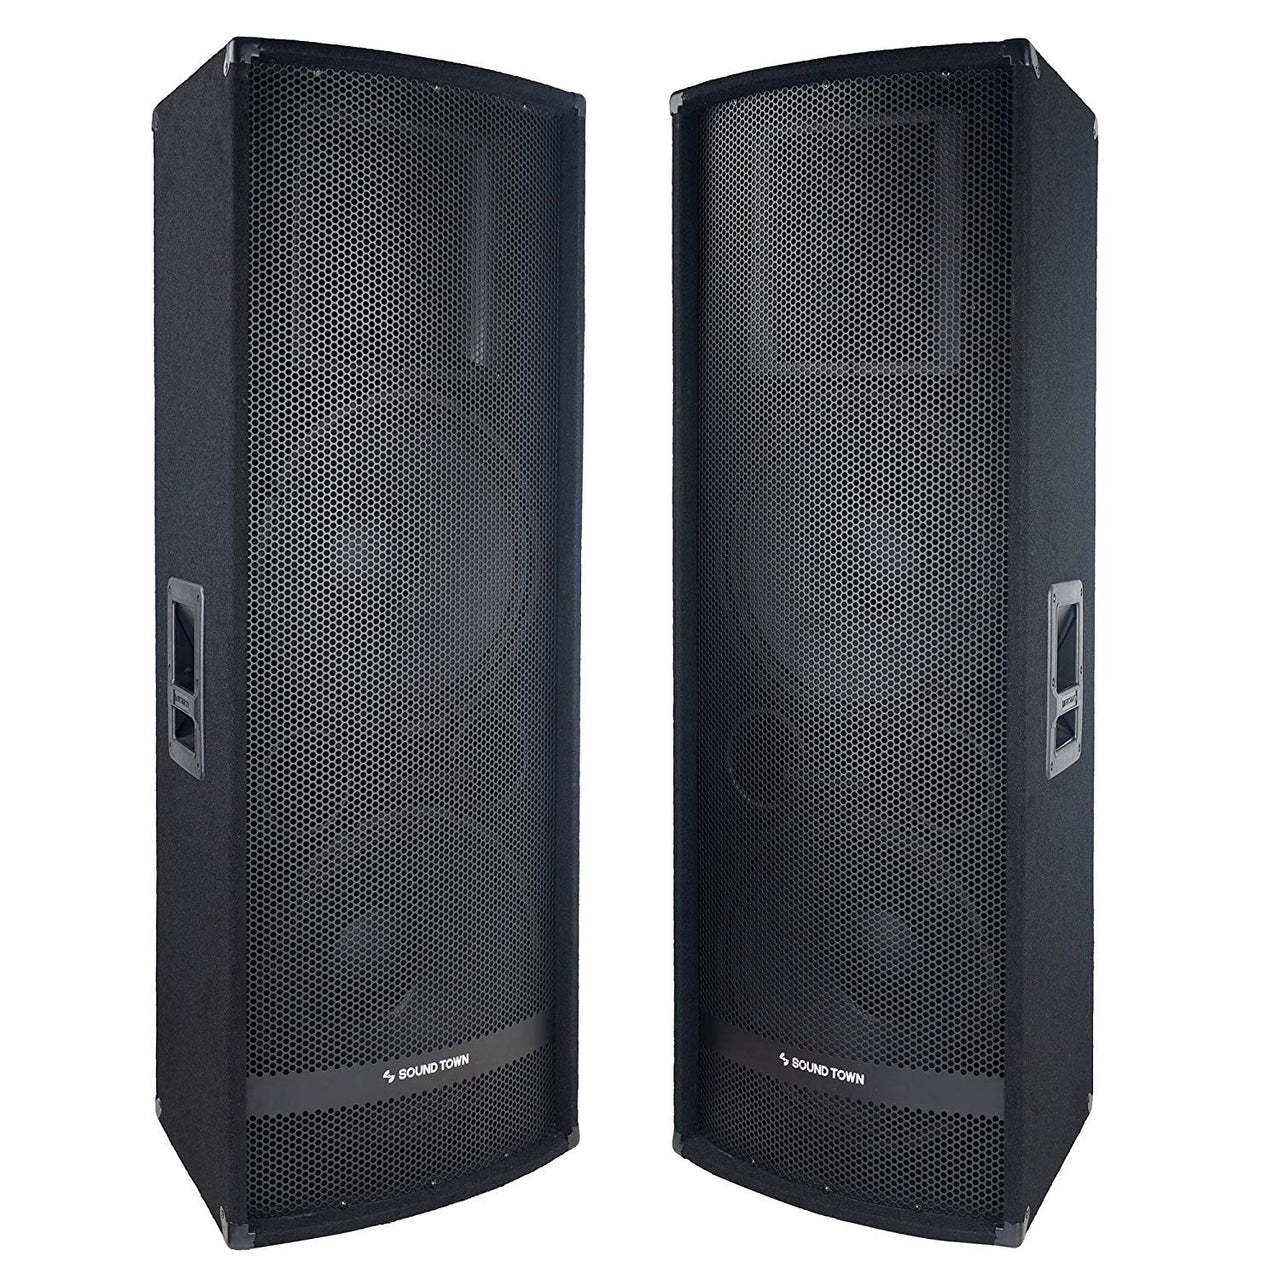 "METIS-215-PAIR <br/> METIS Series 2-Pack Dual 15"" 2800W 2-Way Full-range Passive DJ PA Pro Audio Speaker w/ Titanium Compression Driver for Live Sound, Karaoke, Bar, Church"